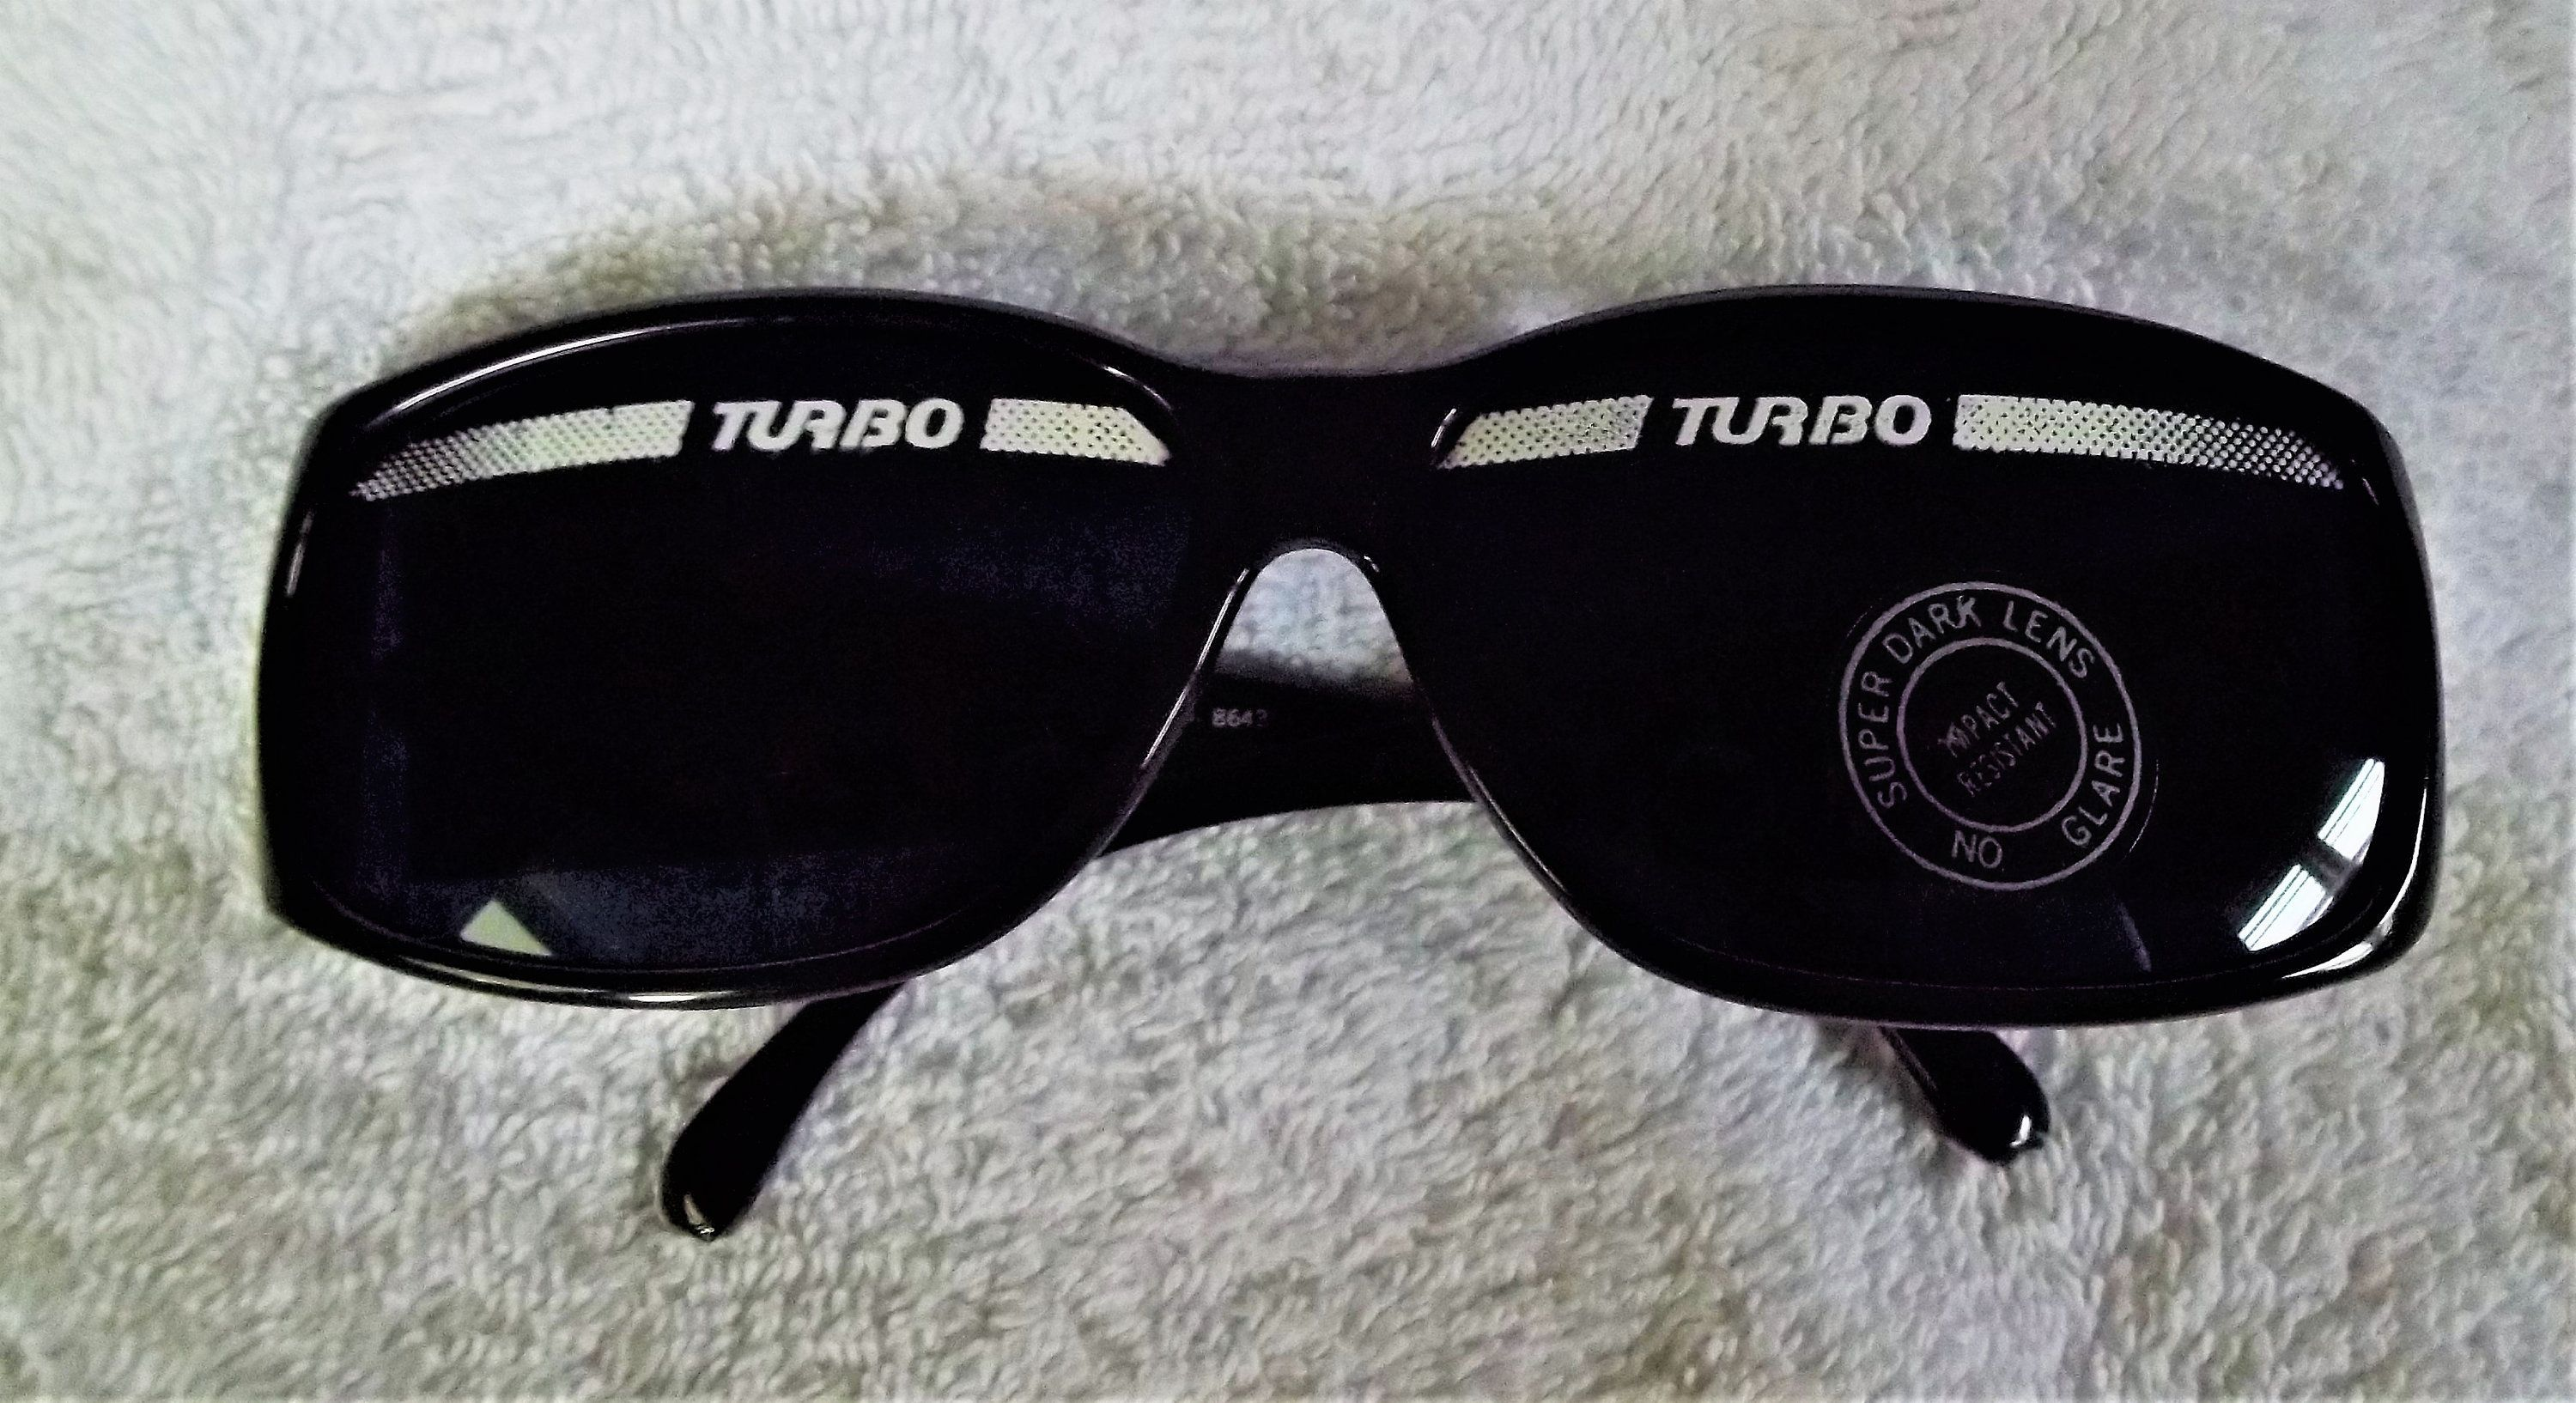 0afc0d7fd194 Rare Vintage Turbo Sunglasses